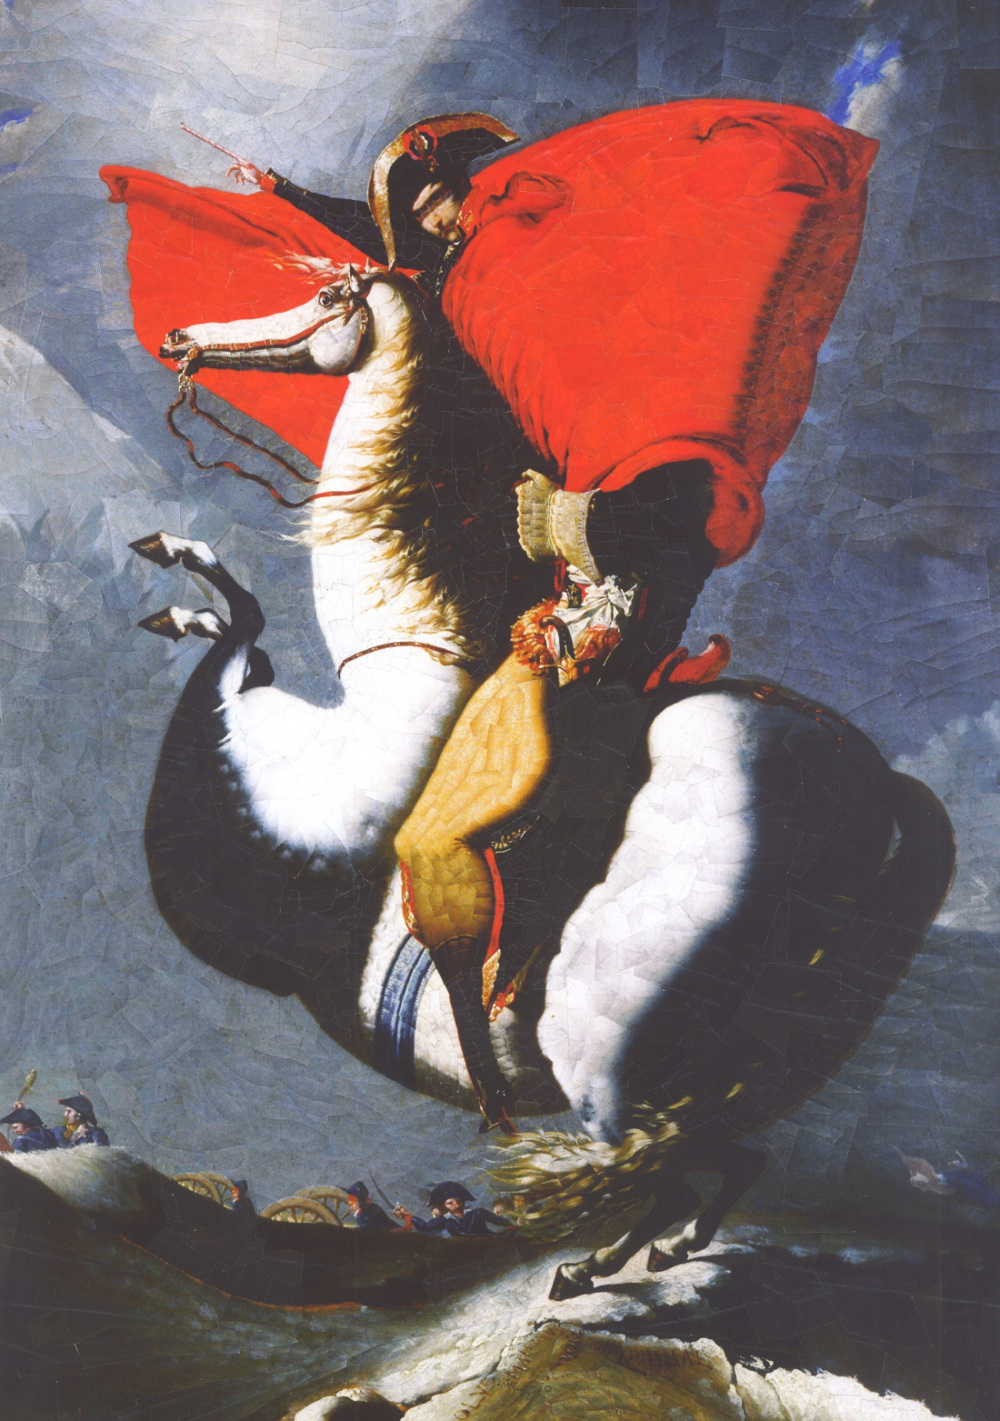 Napoleon-crossing-the-Alps--Manipulation-of-an-original-Painting-by-Jacques-Lo.uis-David_1000.jpg